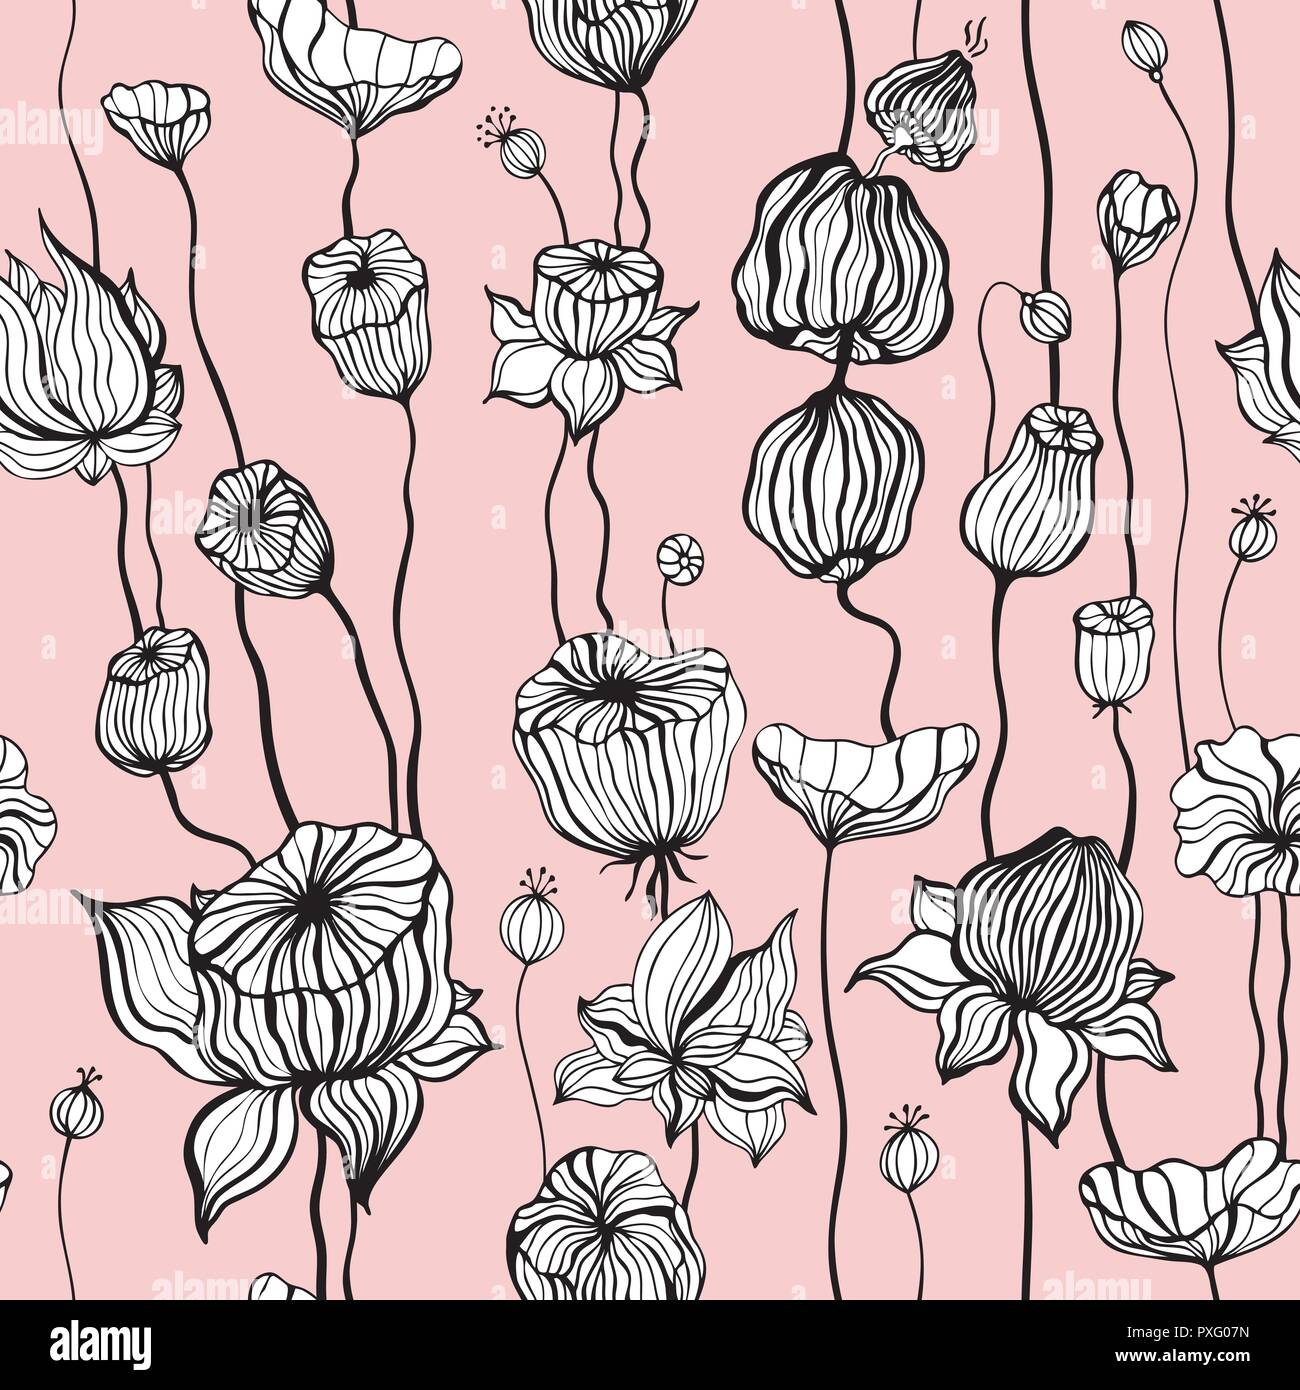 Vintage Pattern With Hand Drawn Abstract Flowers Seamless